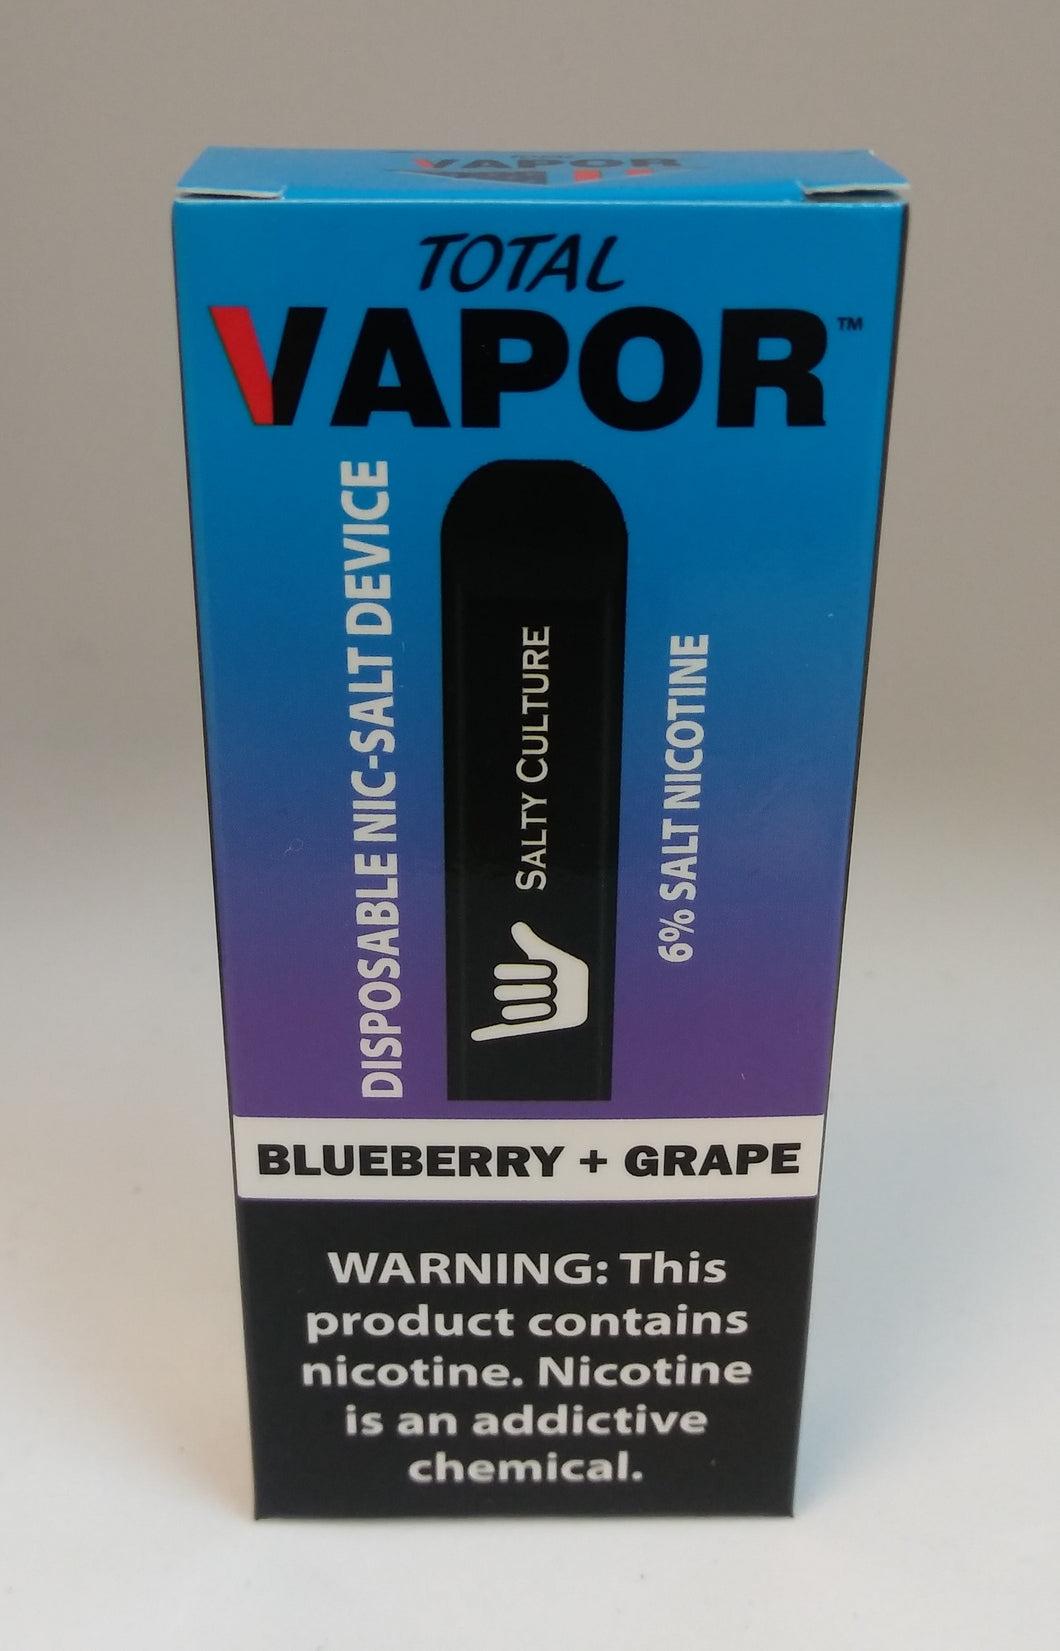 Total vapor-DISPOSABLE salt nic device-Blueberry+Grape